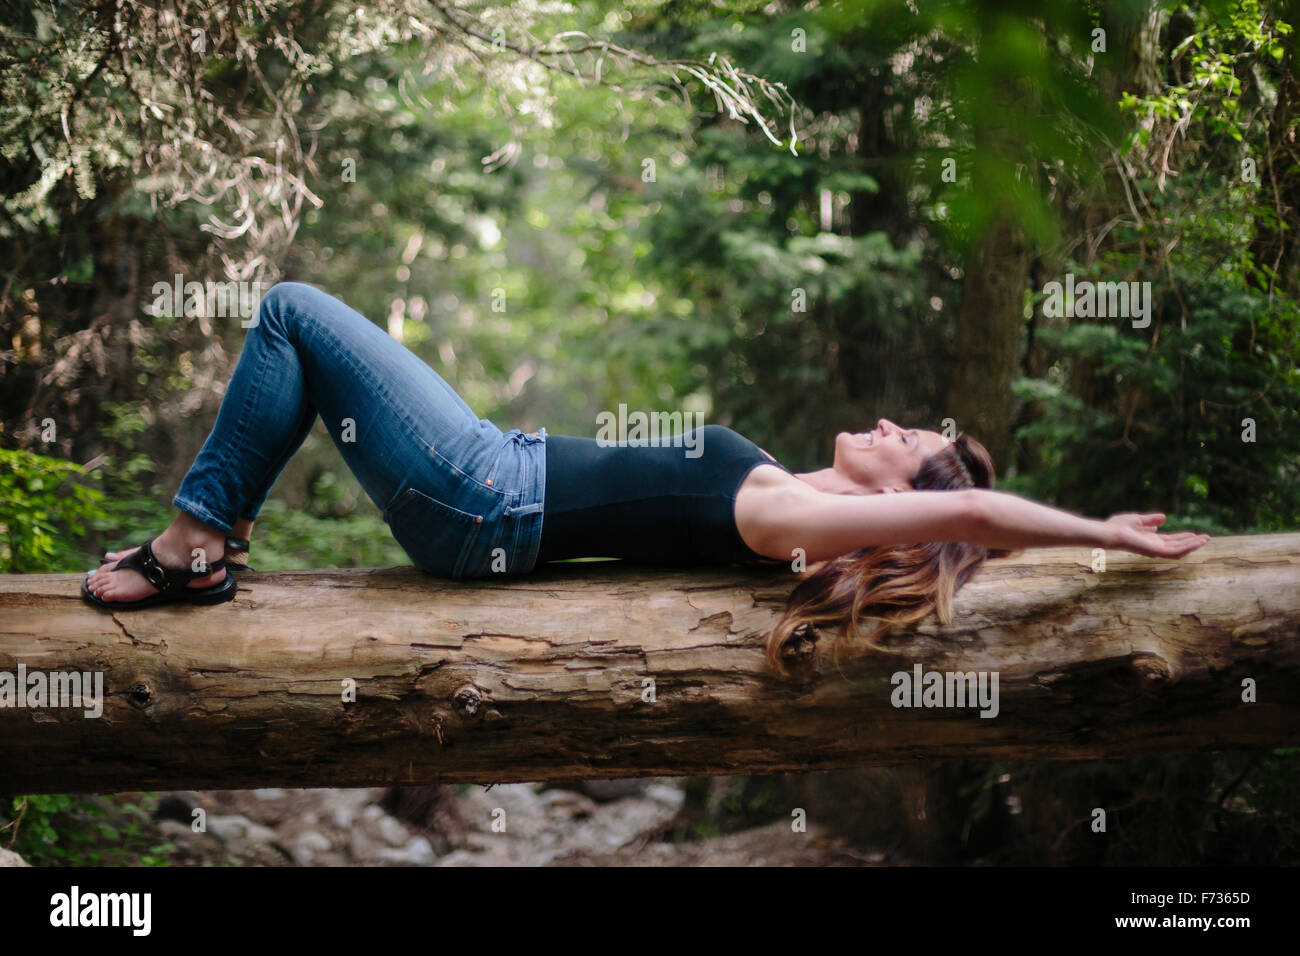 Woman lying on her back on a fallen tree trunk in a forest. - Stock Image